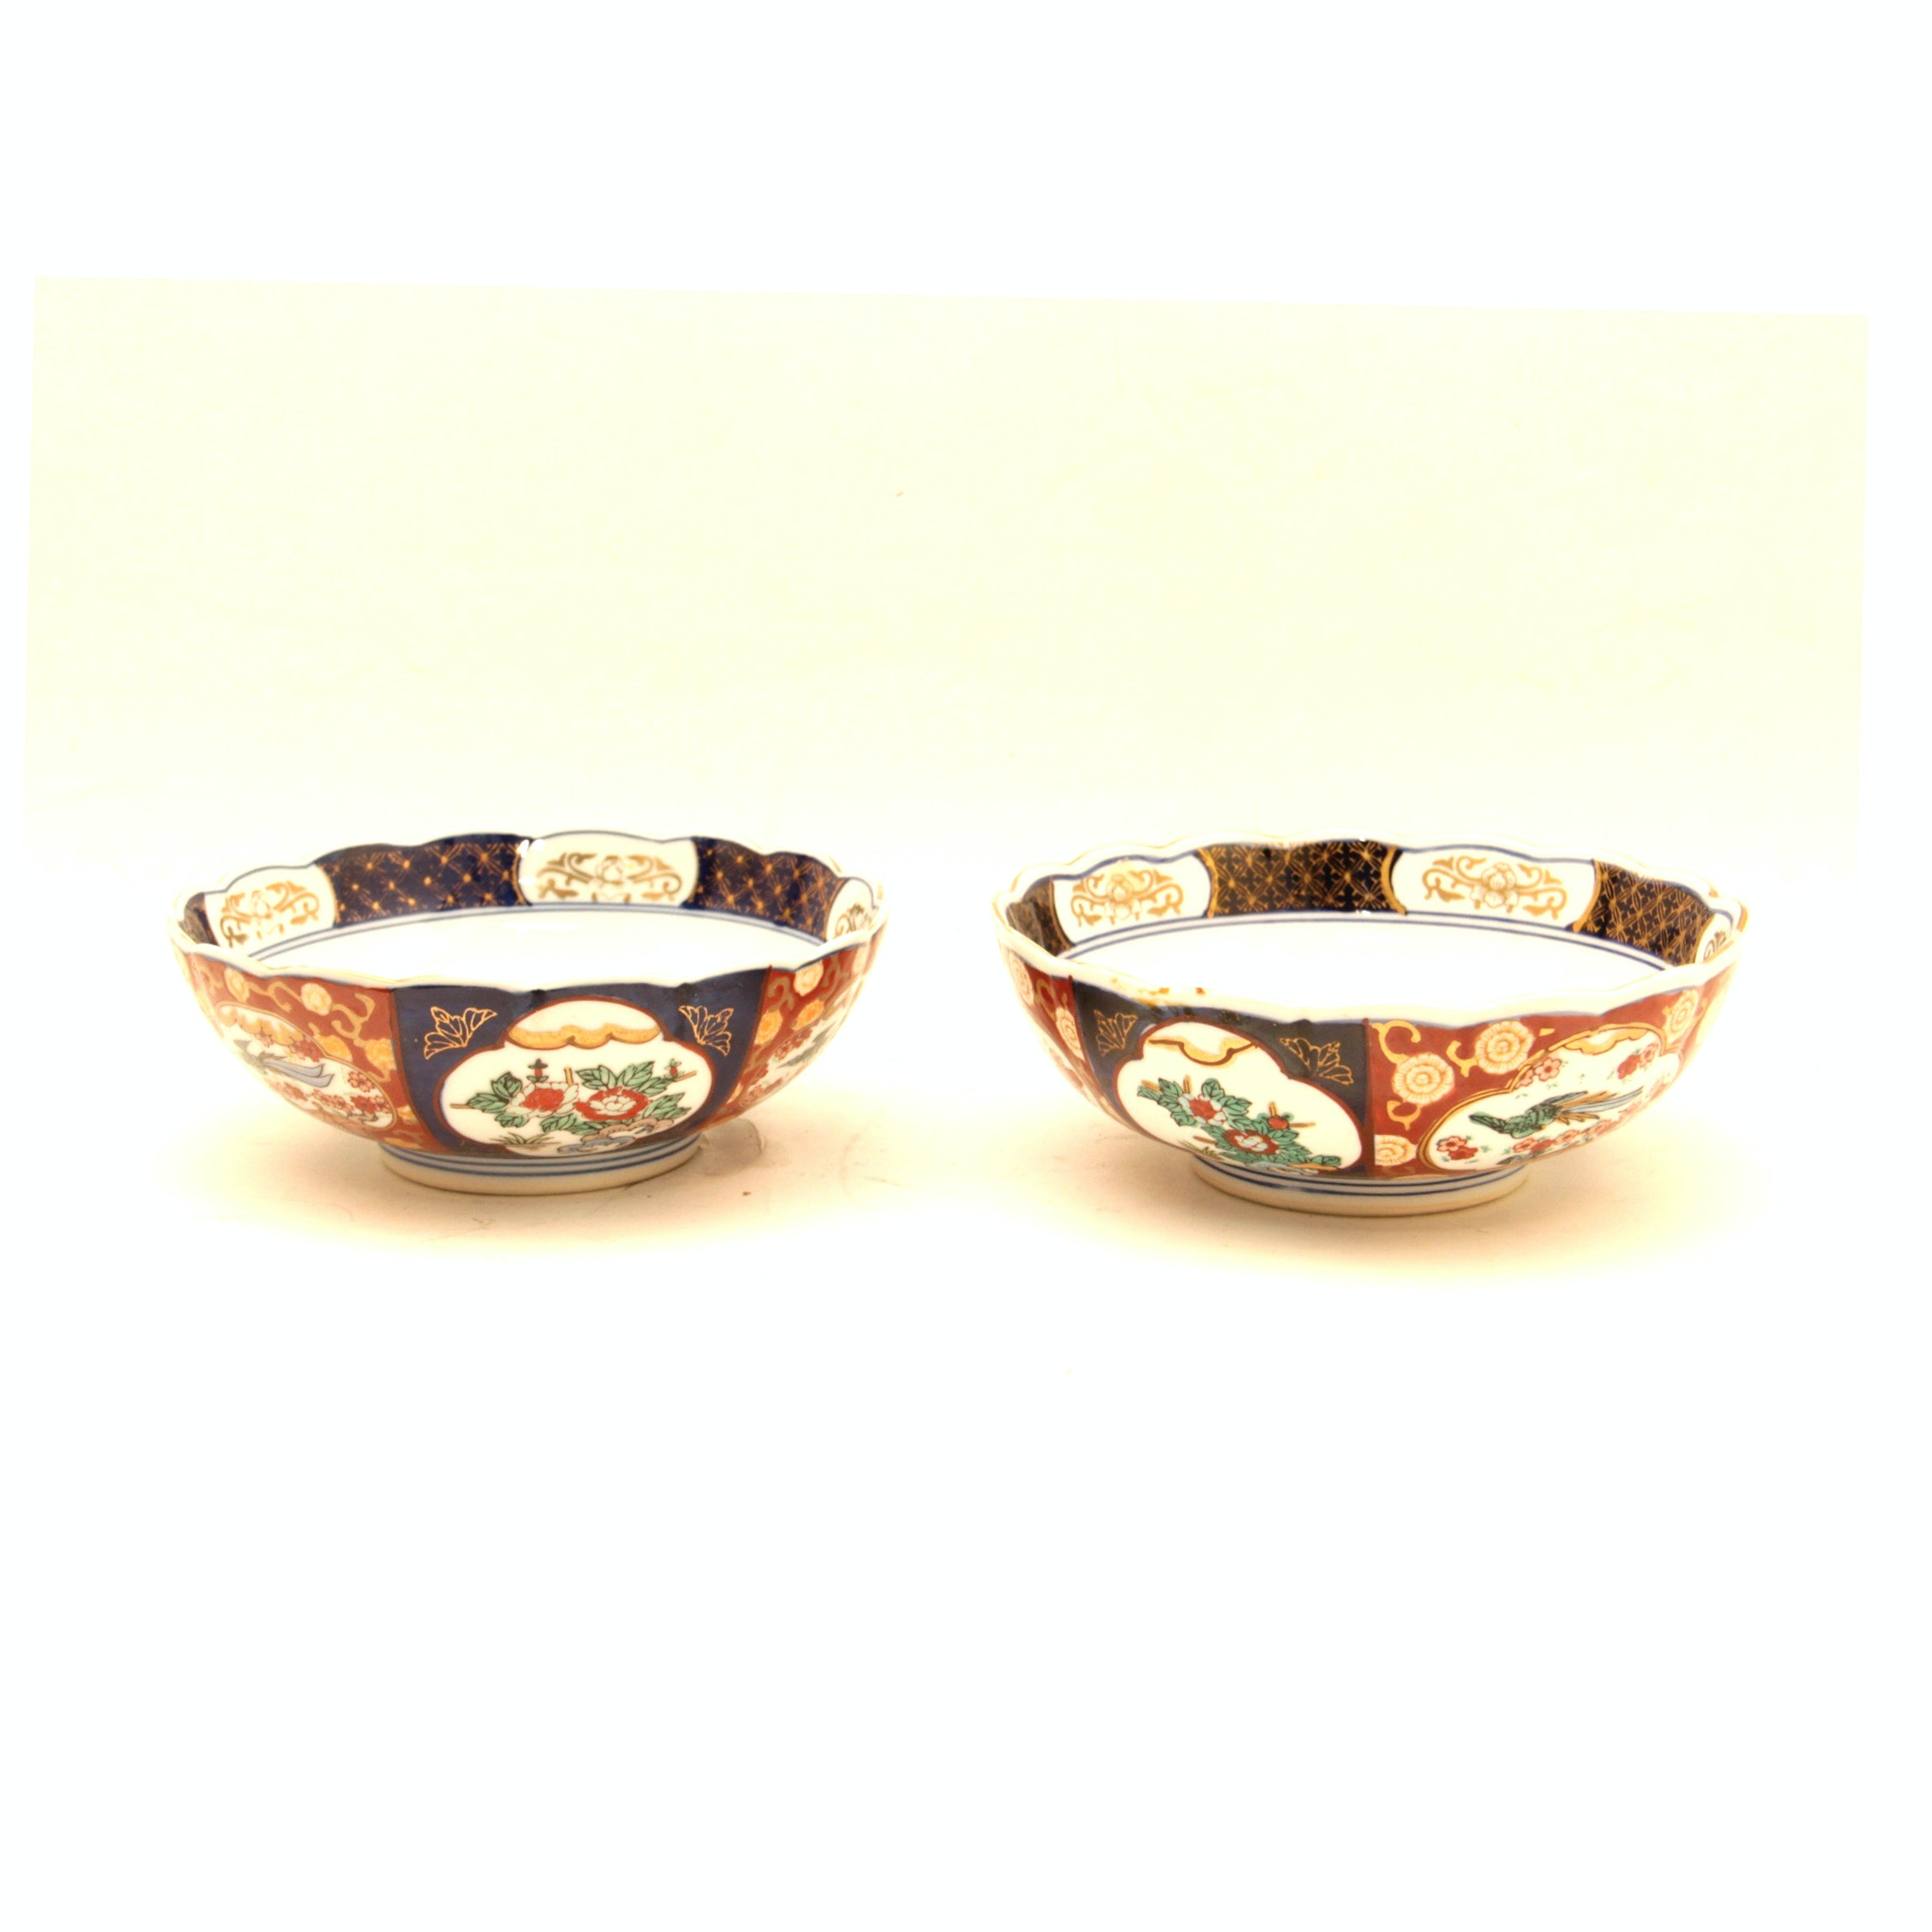 Pair of Hand Painted Gold Imari Bowls